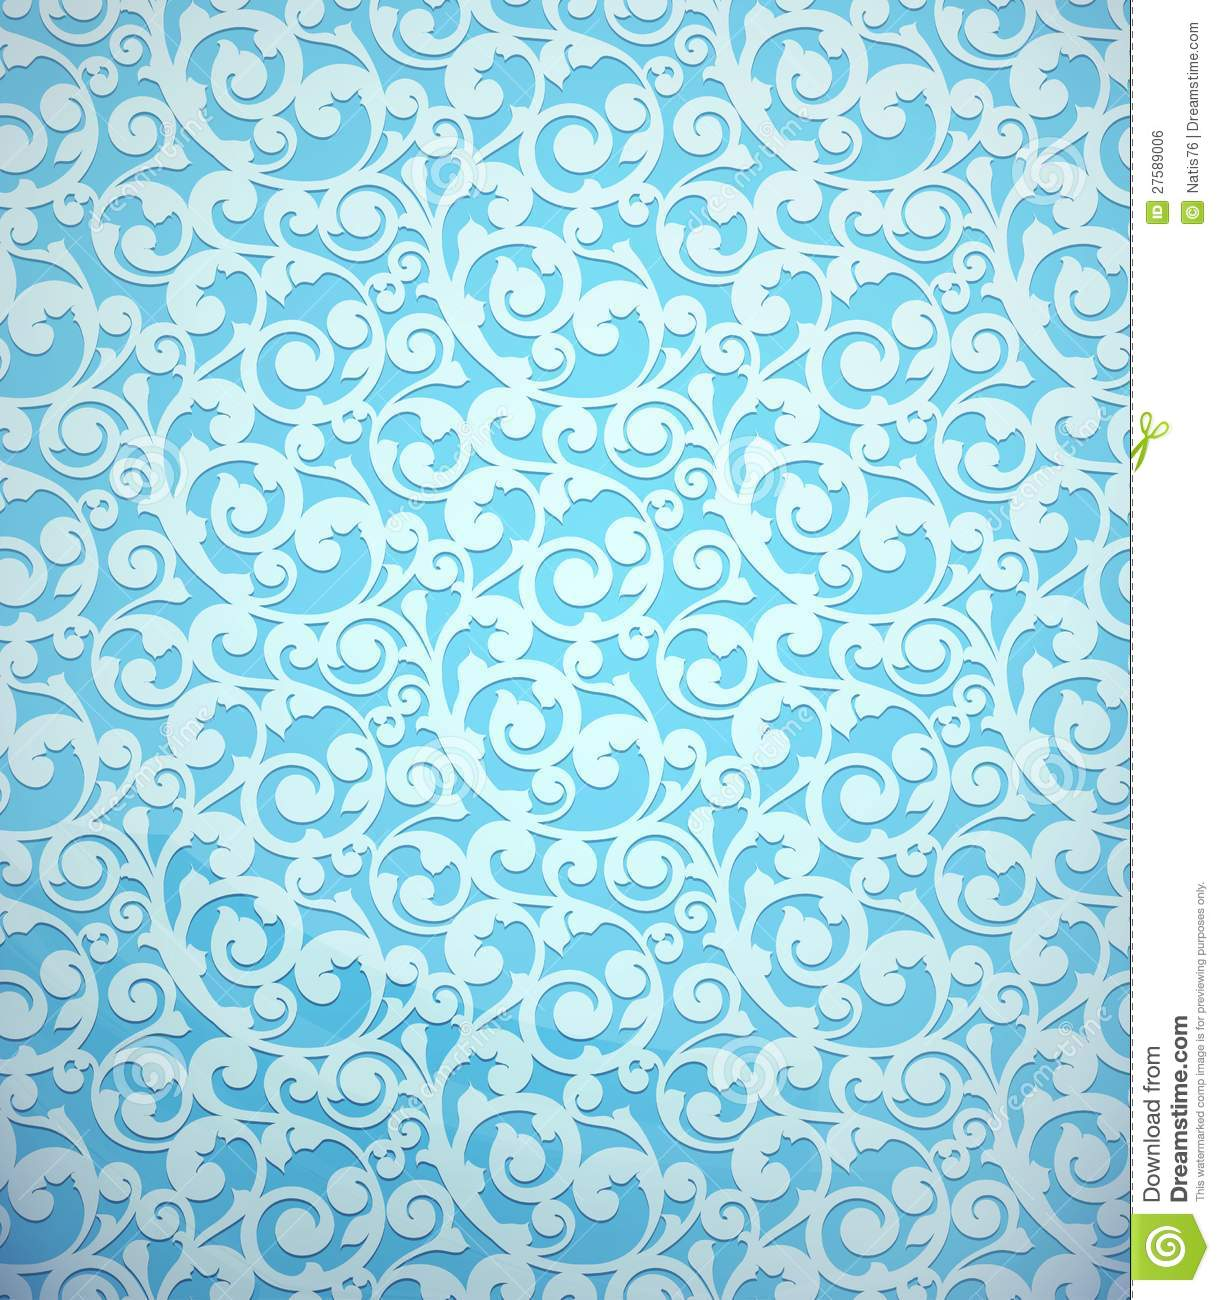 Blue Vintage Seamless Pattern Royalty Free Stock Image ...